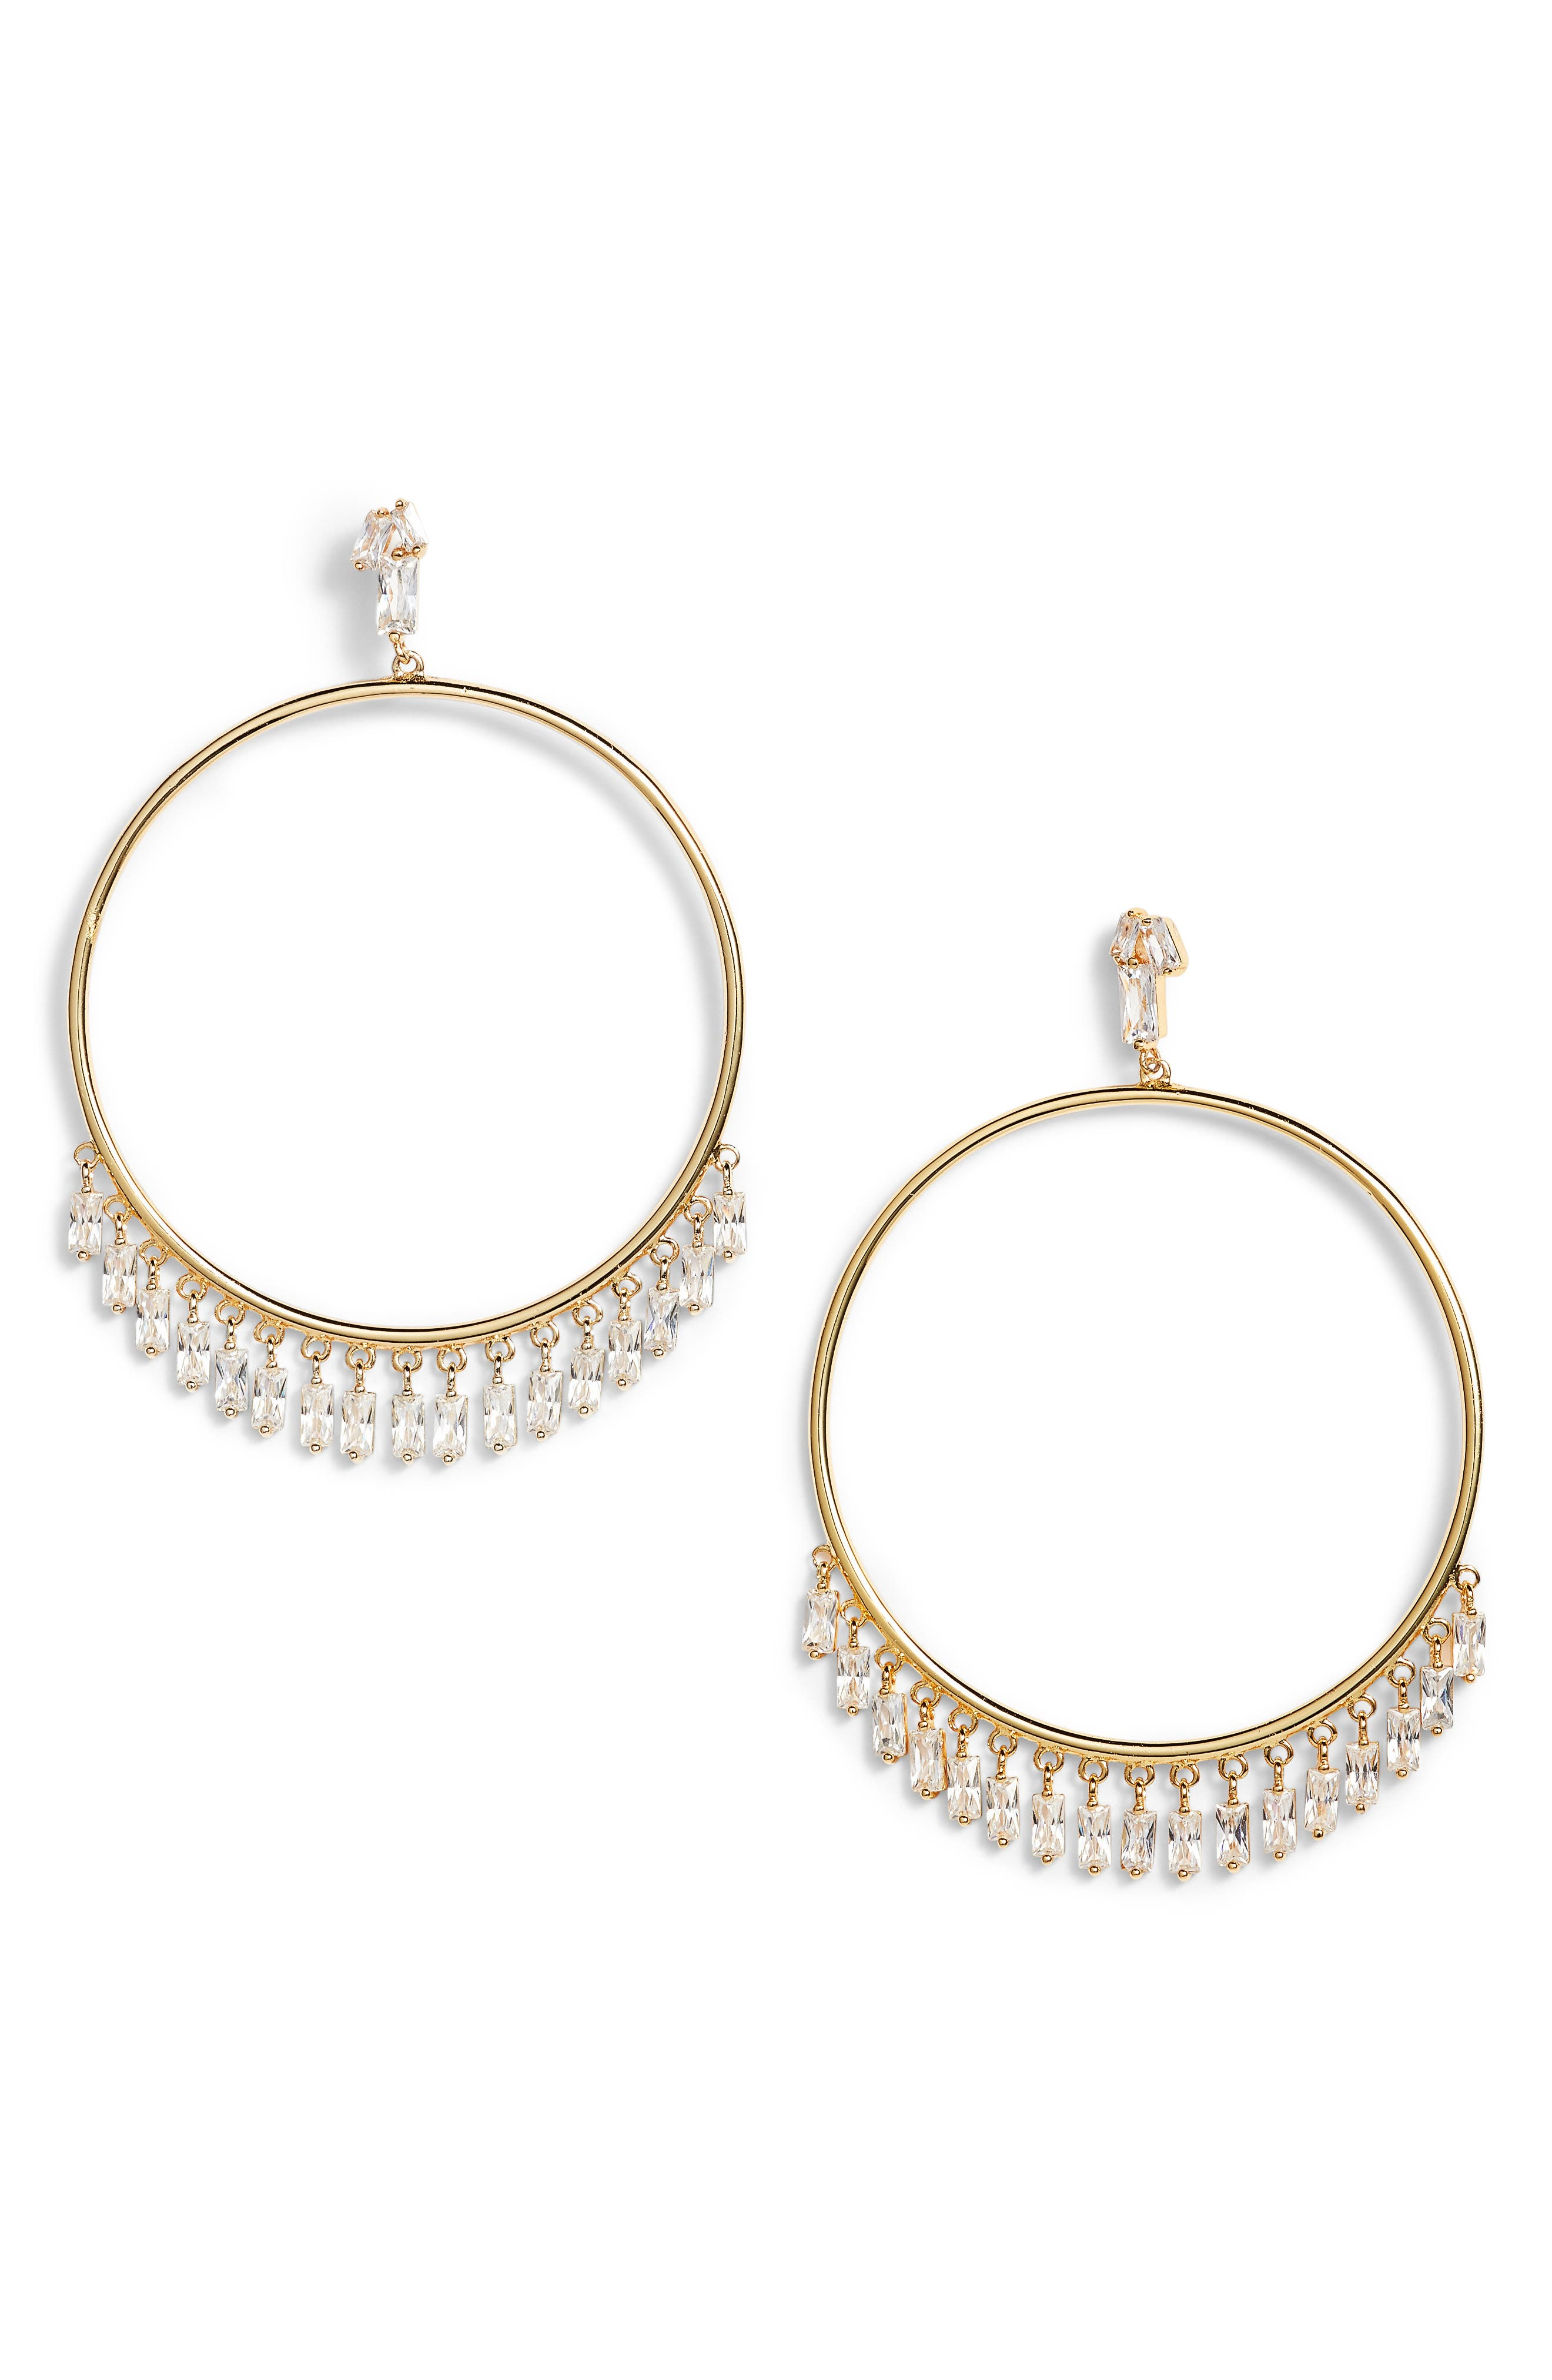 Amara Frontal Hoop Earrrings,                         Main,                         color, Gold